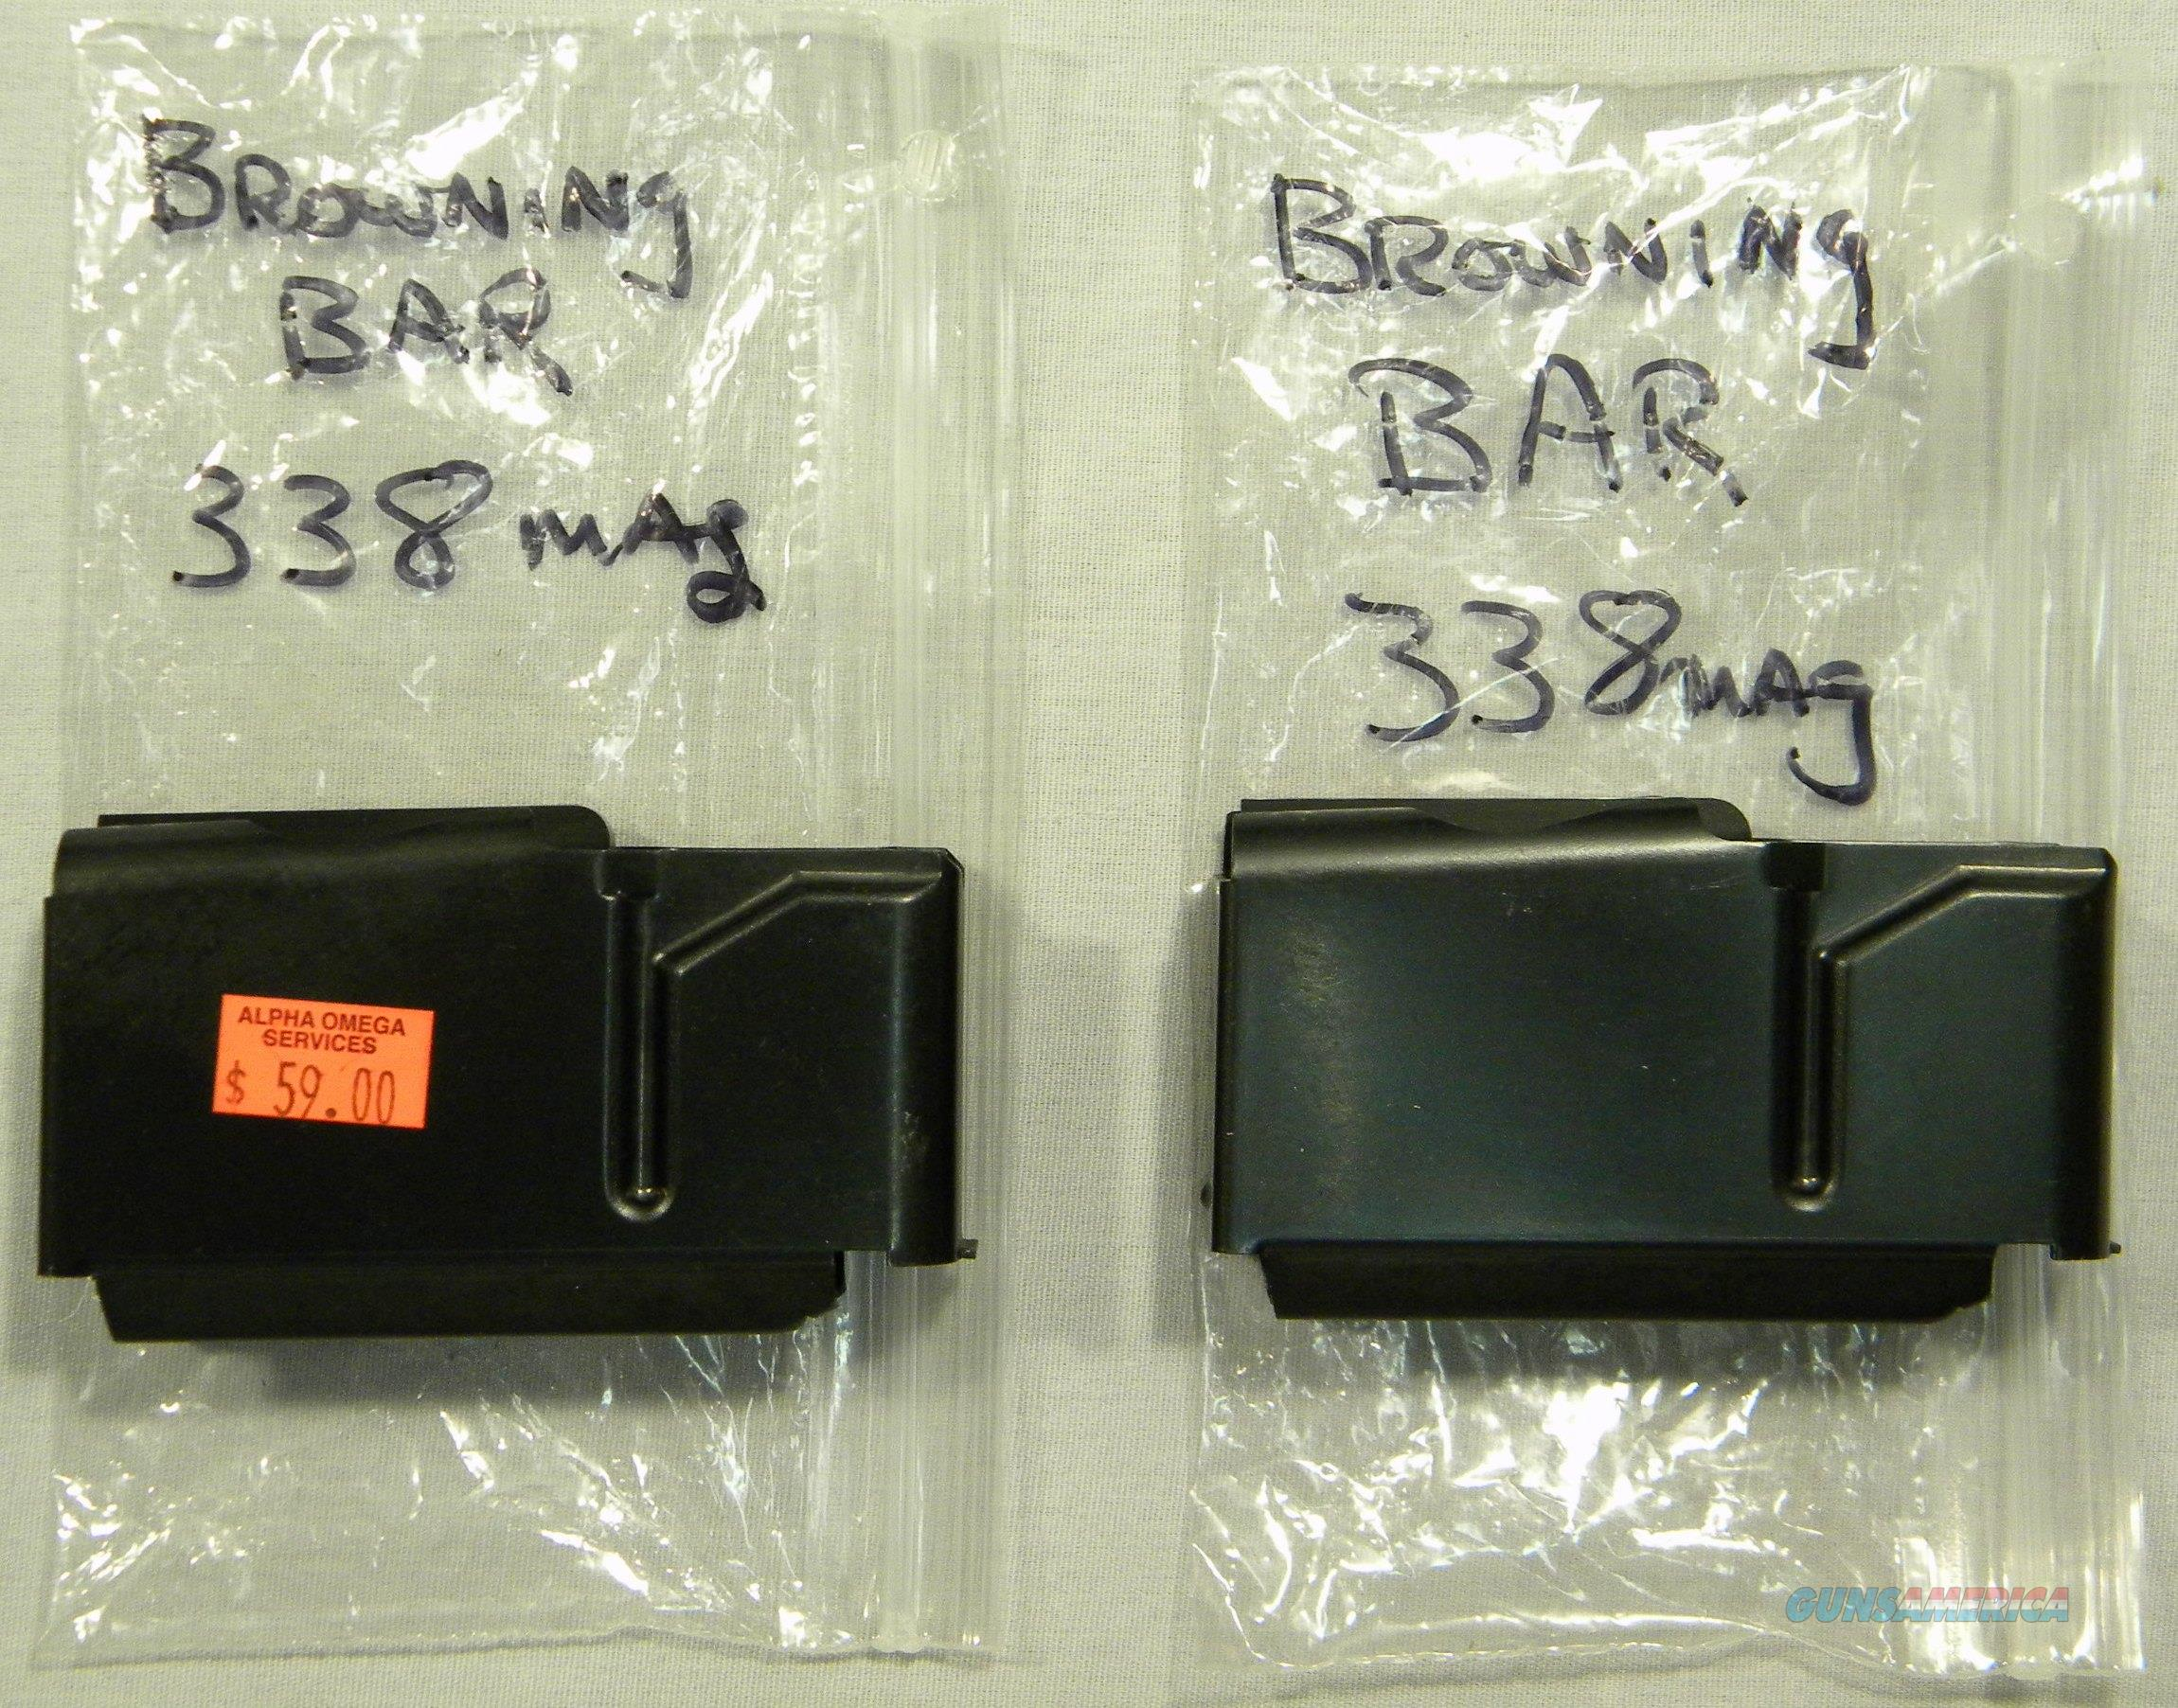 Browning BAR Magazines, .338 Win Mag, New, No Box  Non-Guns > Magazines & Clips > Rifle Magazines > Other